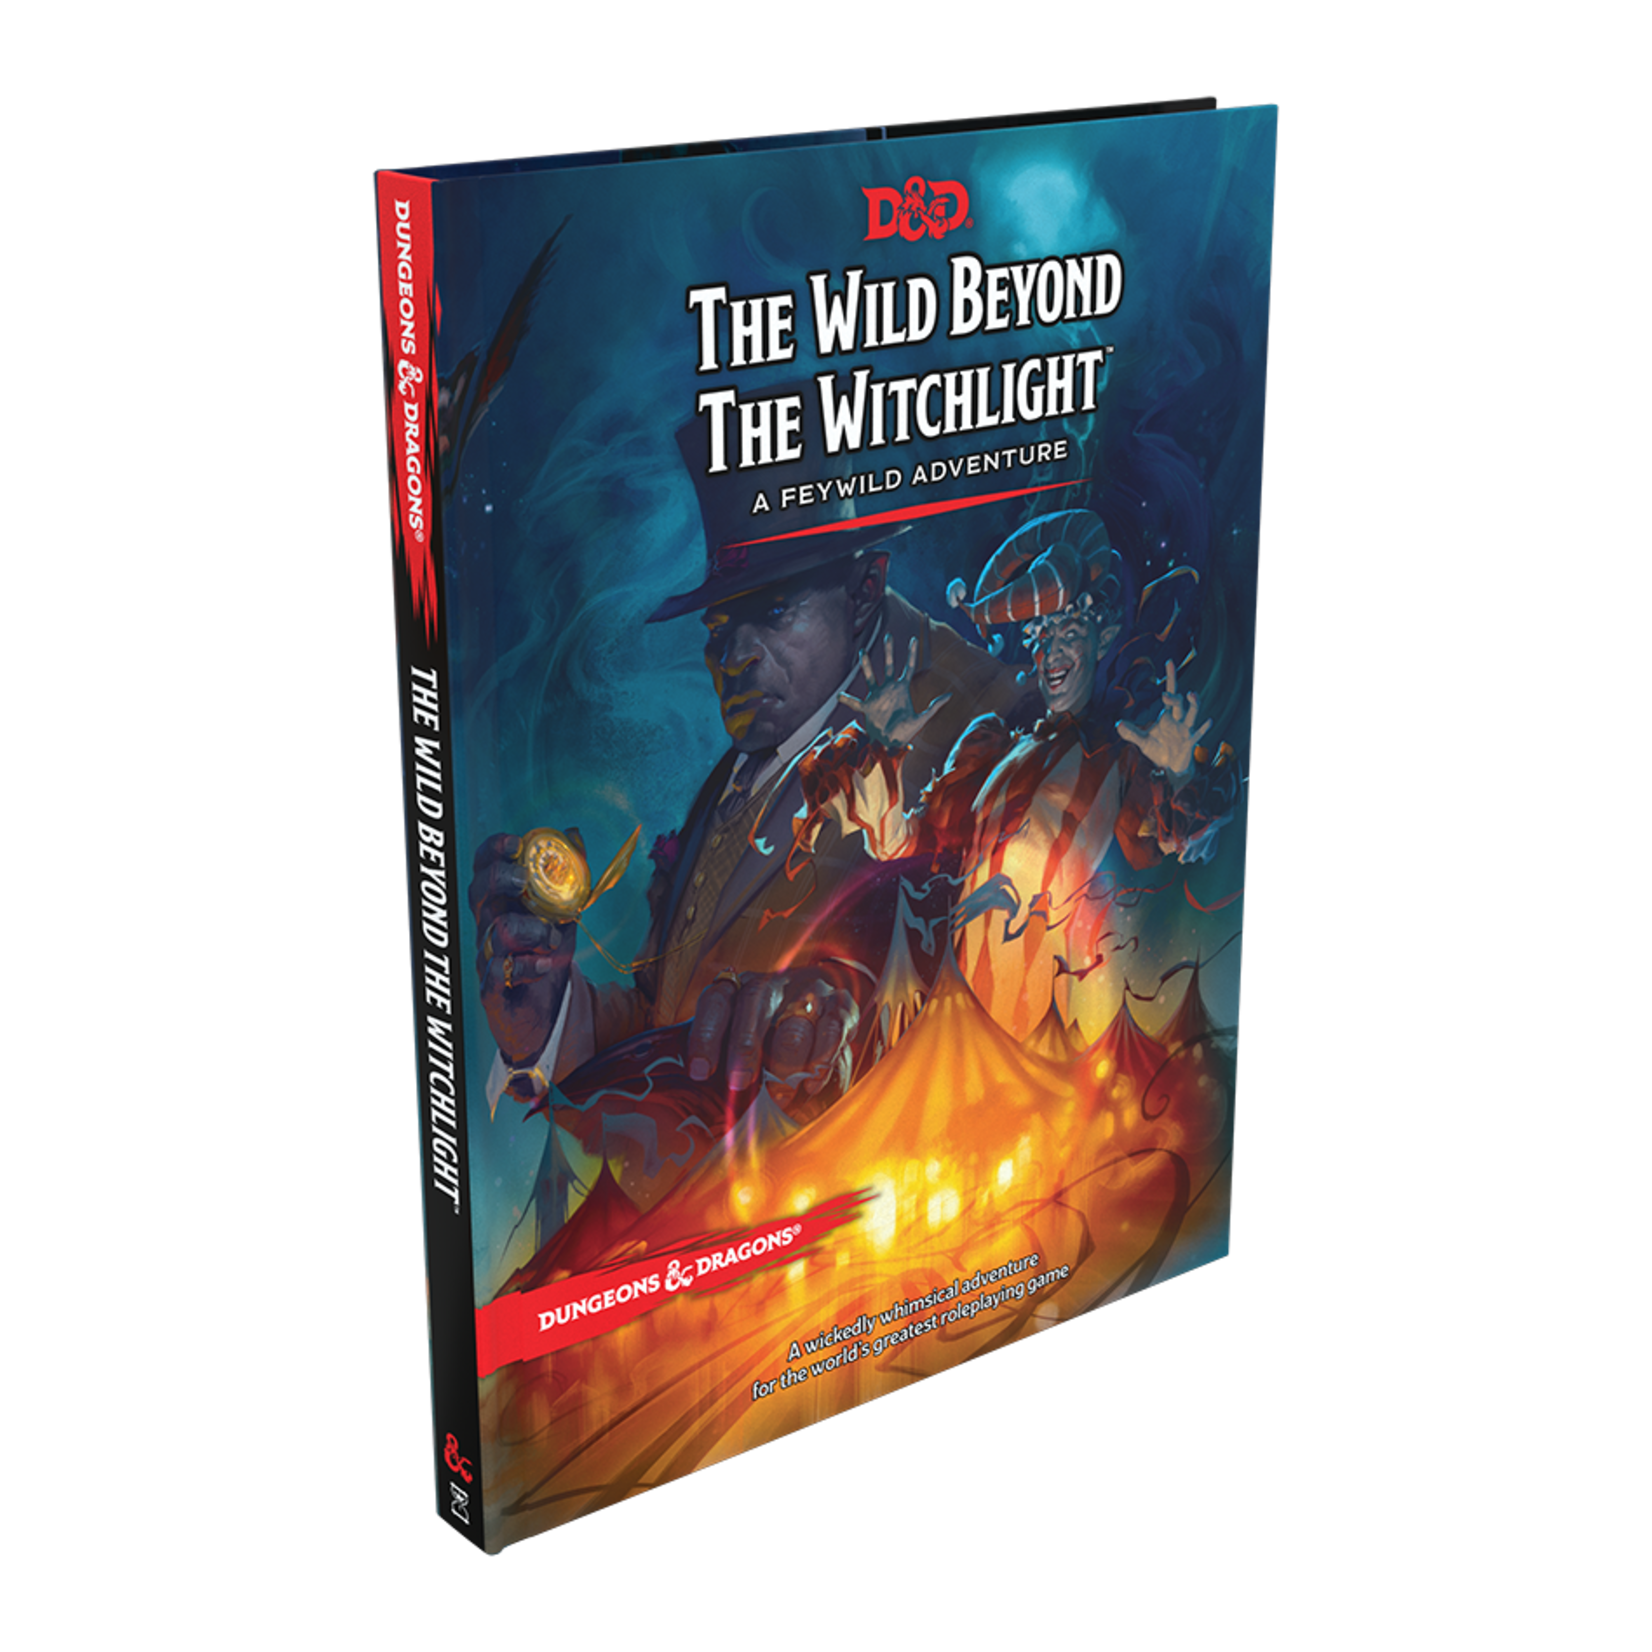 Dungeons & Dragons Dungeons & Dragons 5th Edition: The Wild Beyond the Witchlight (Regular Cover)